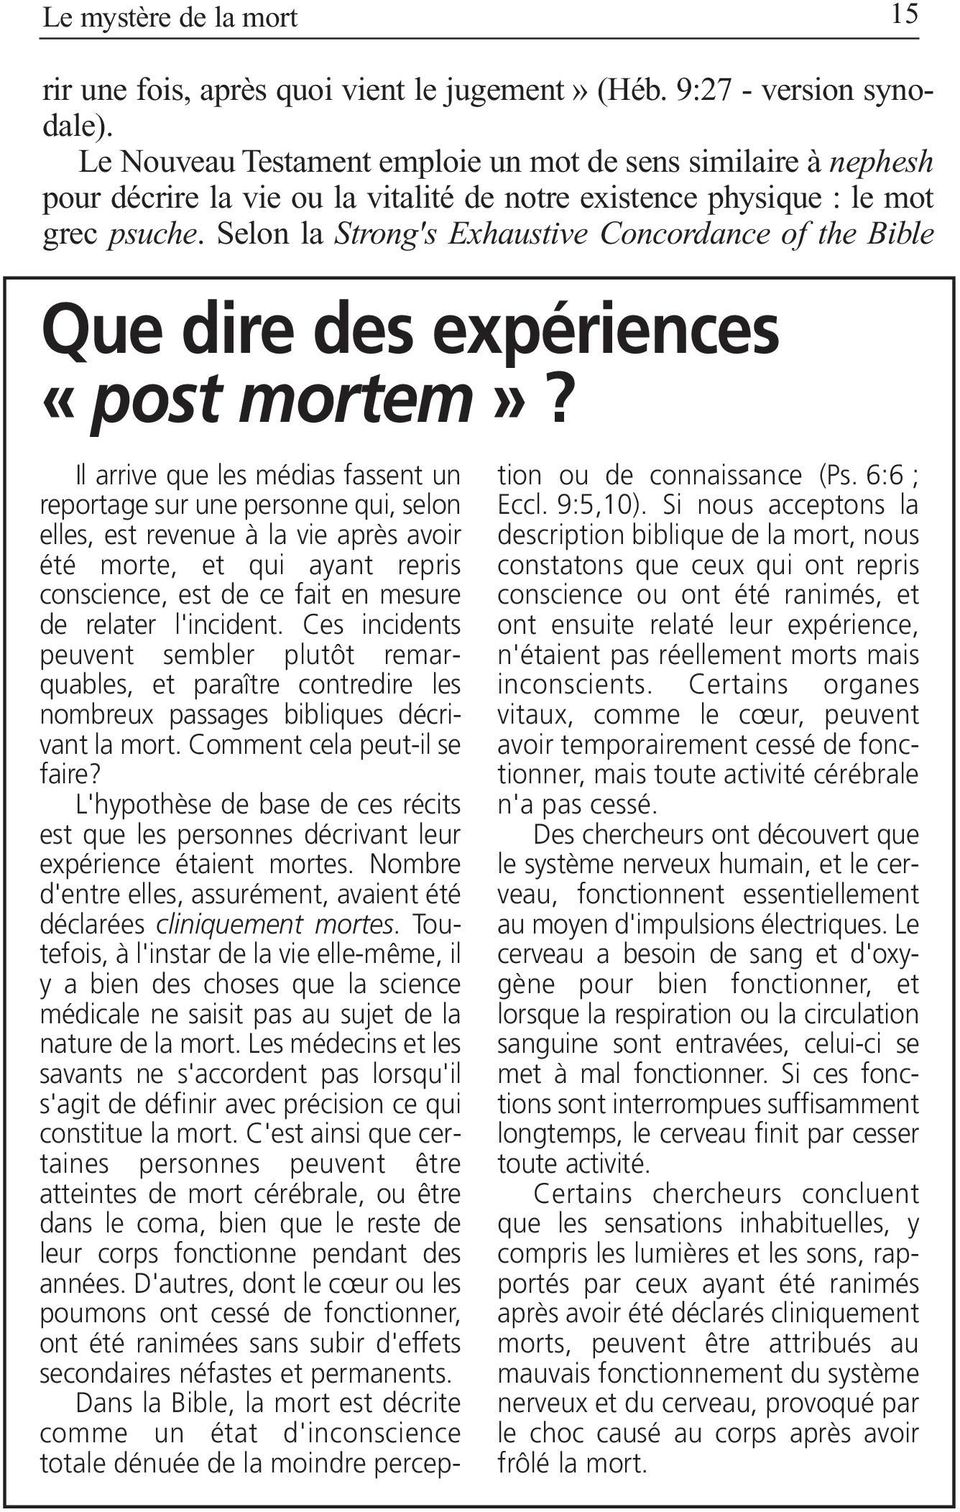 Selon la Strong's Exhaustive Concordance of the Bible Que dire des expériences «post mortem»?